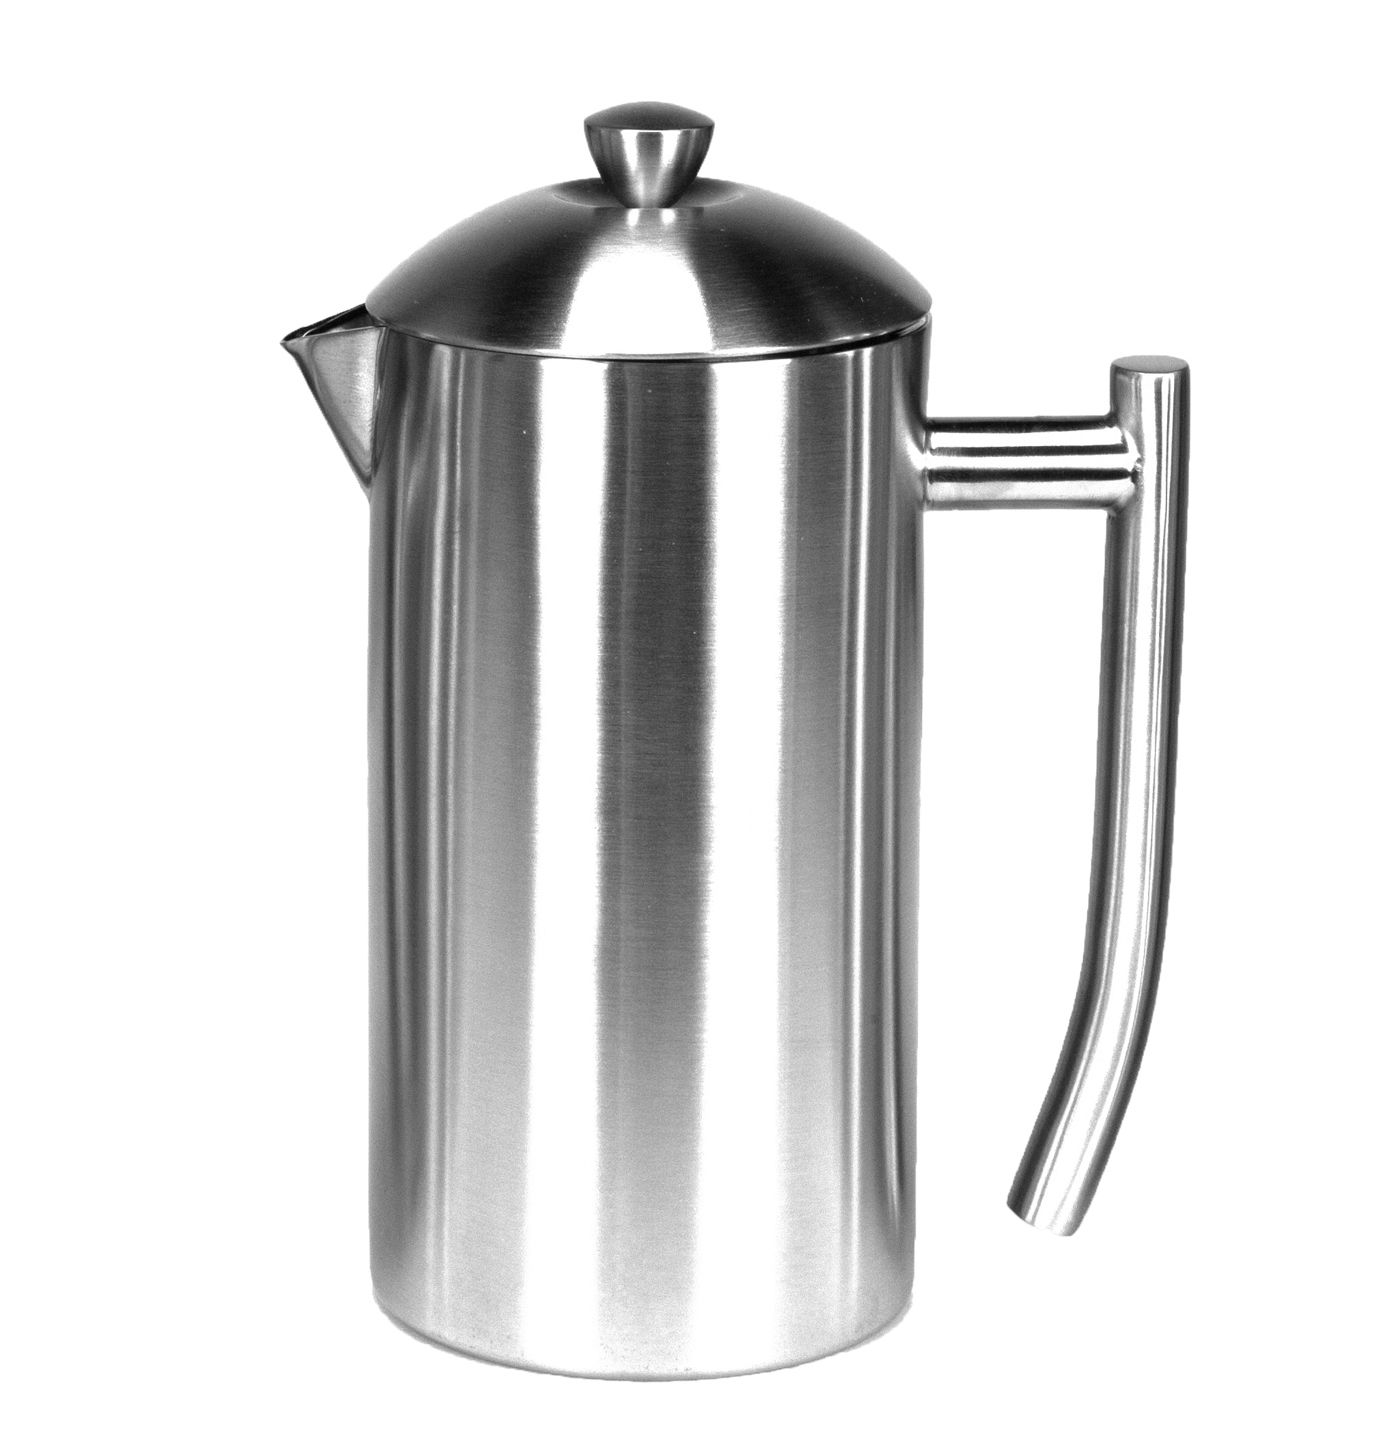 Frieling Usa frieling usa 0142 press with brushed finish 17 oz